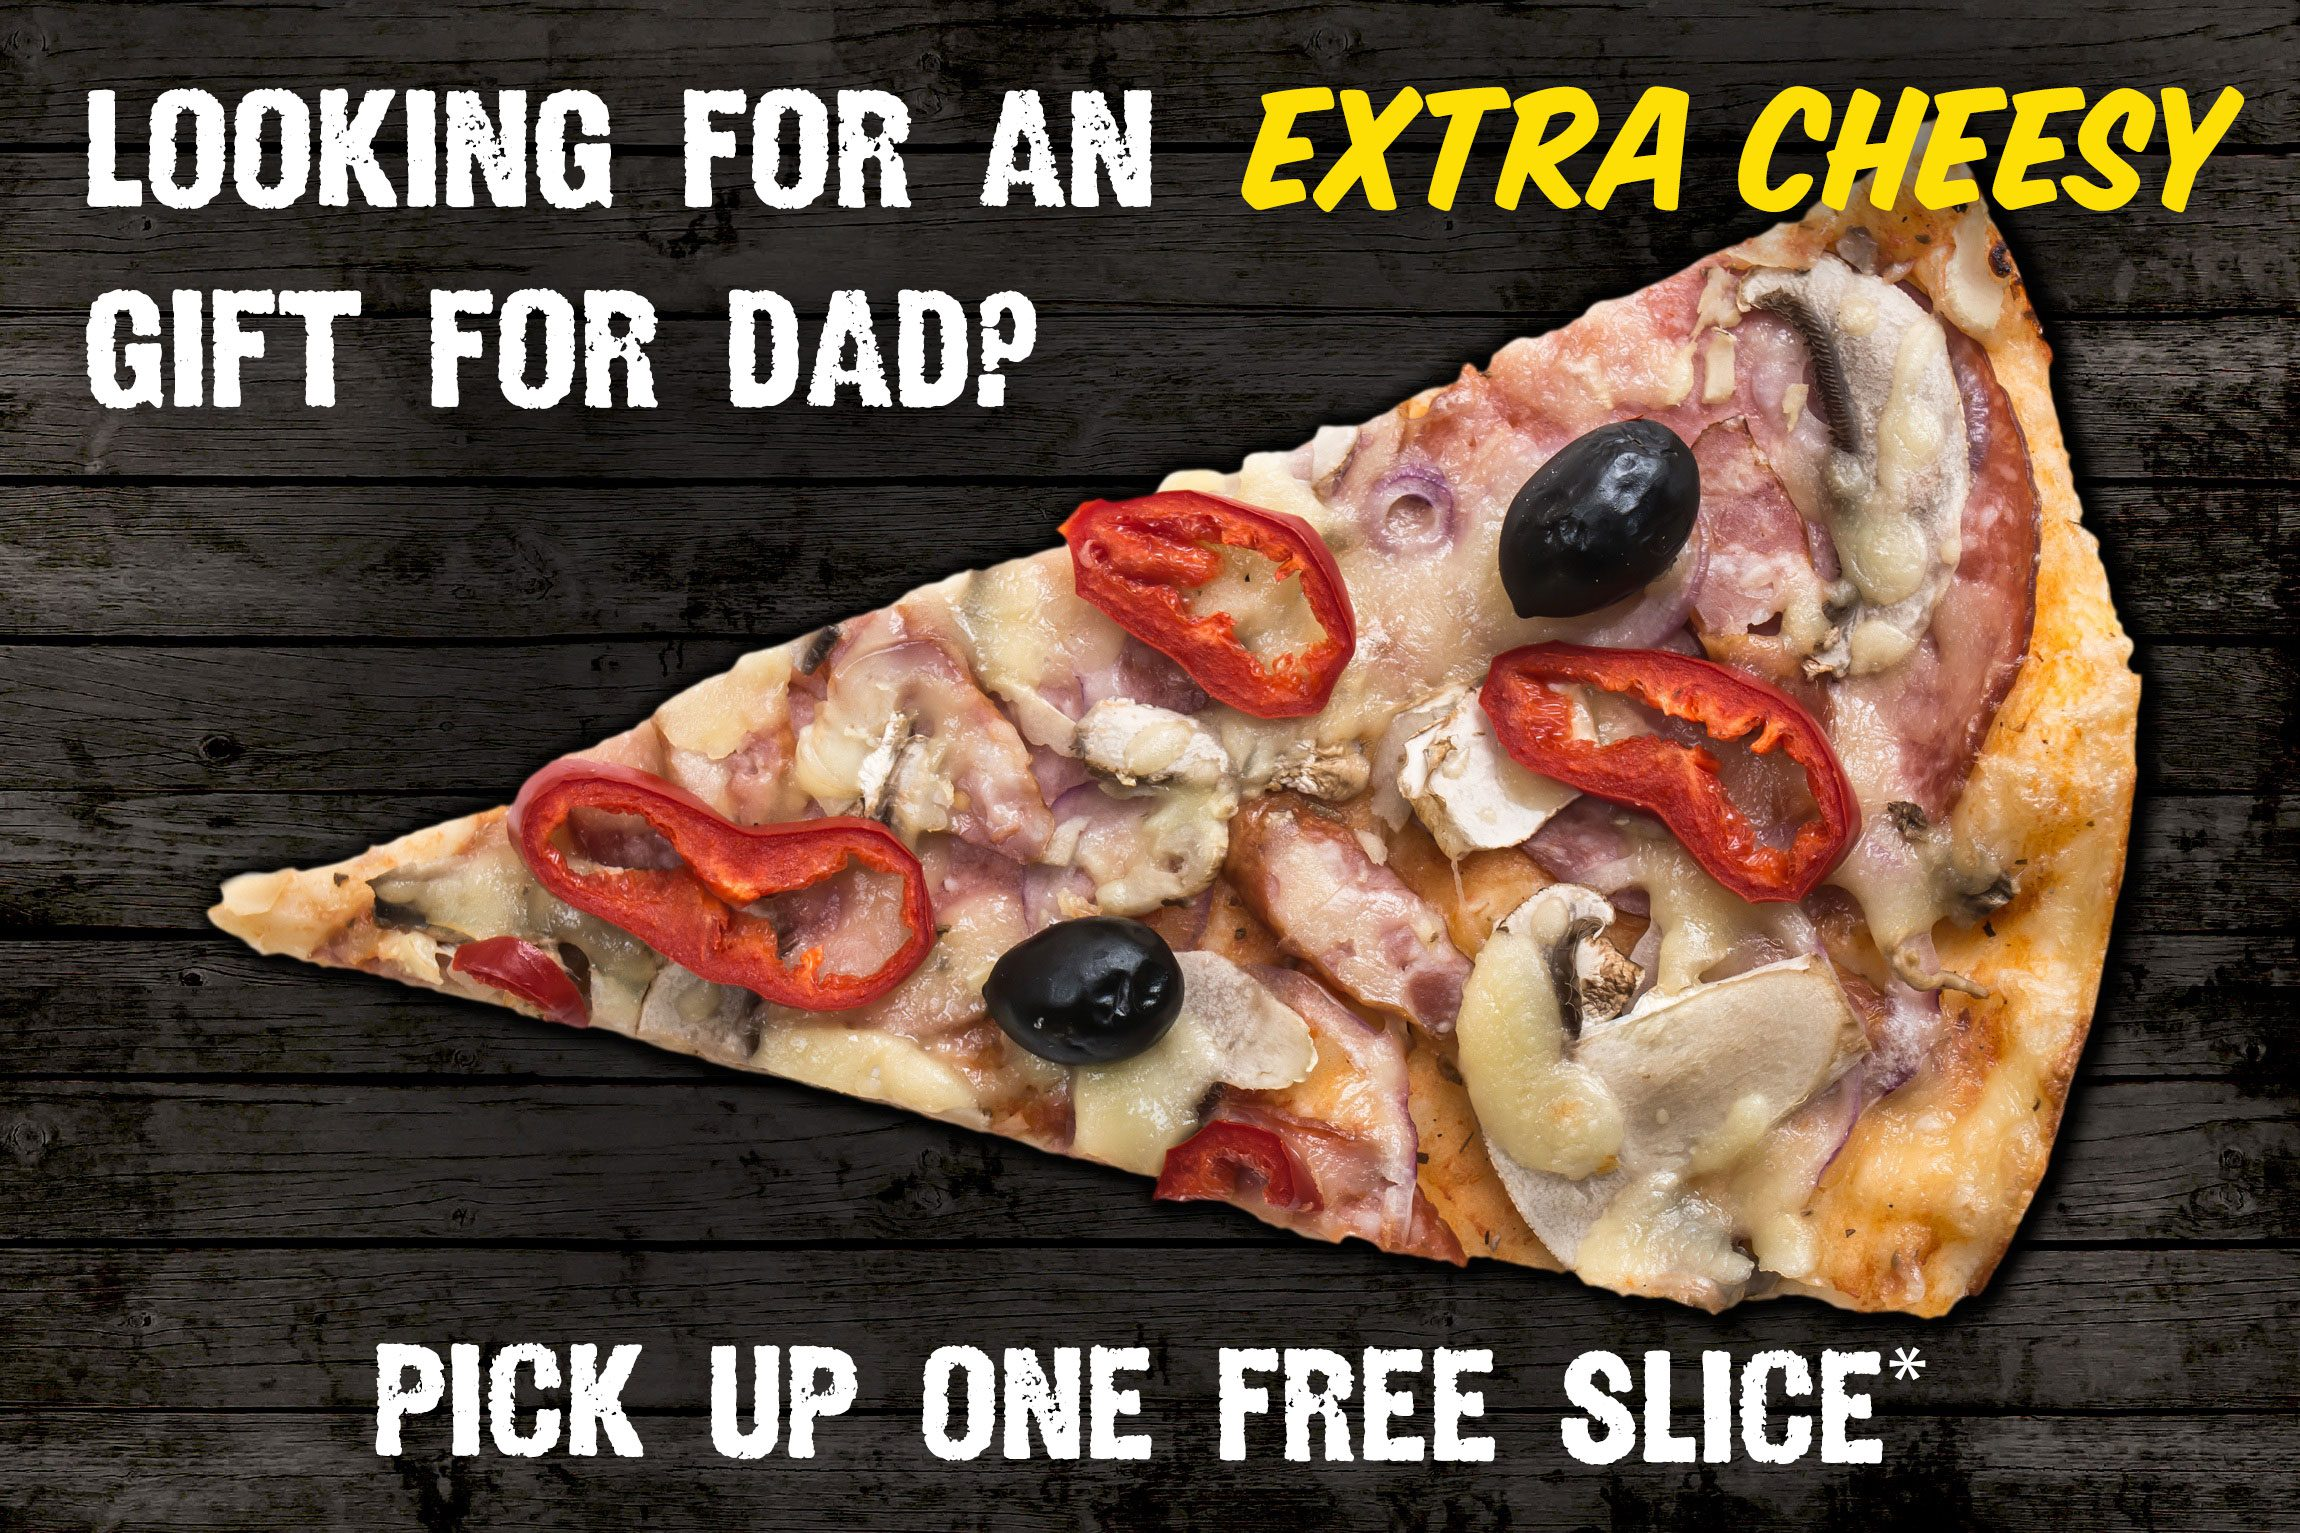 Father's Day Marketing, Pizza Ad, Dad Joke